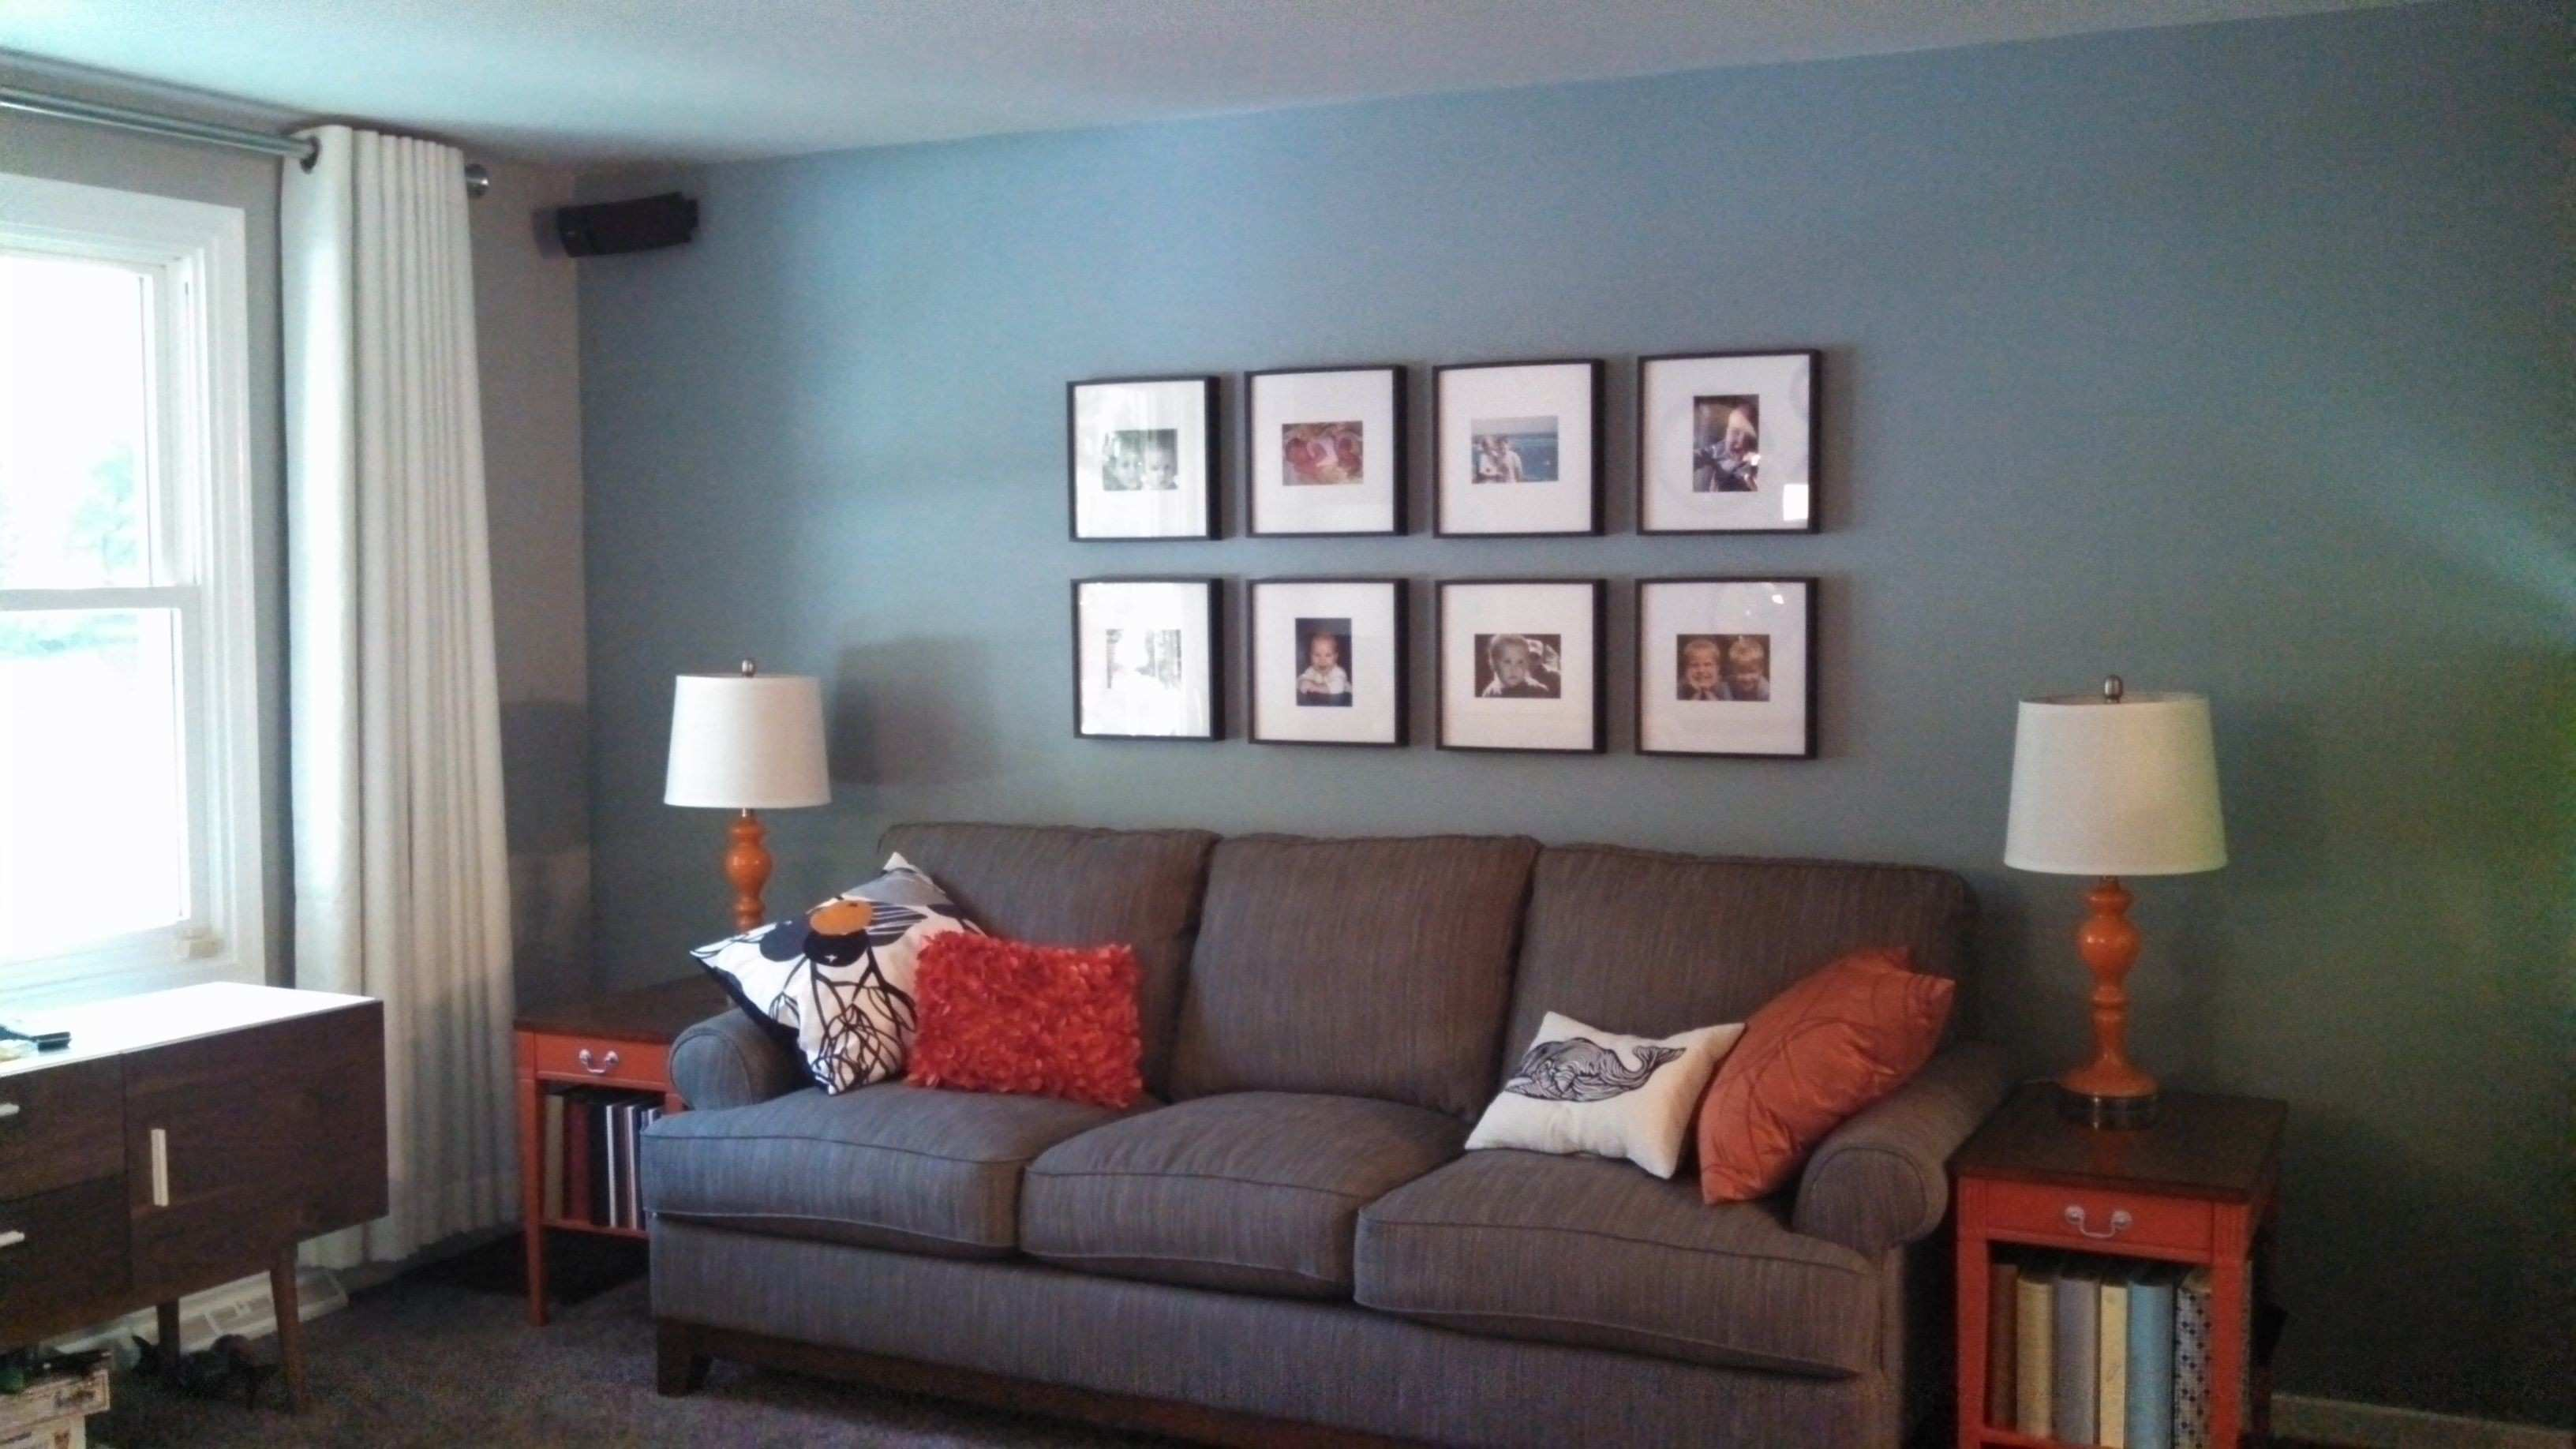 decorating ideas for living rooms accent wall fresh gray room blue sofa orange tables small rustic pedestal table pier decor clearance white patio side cordless lamps pottery barn